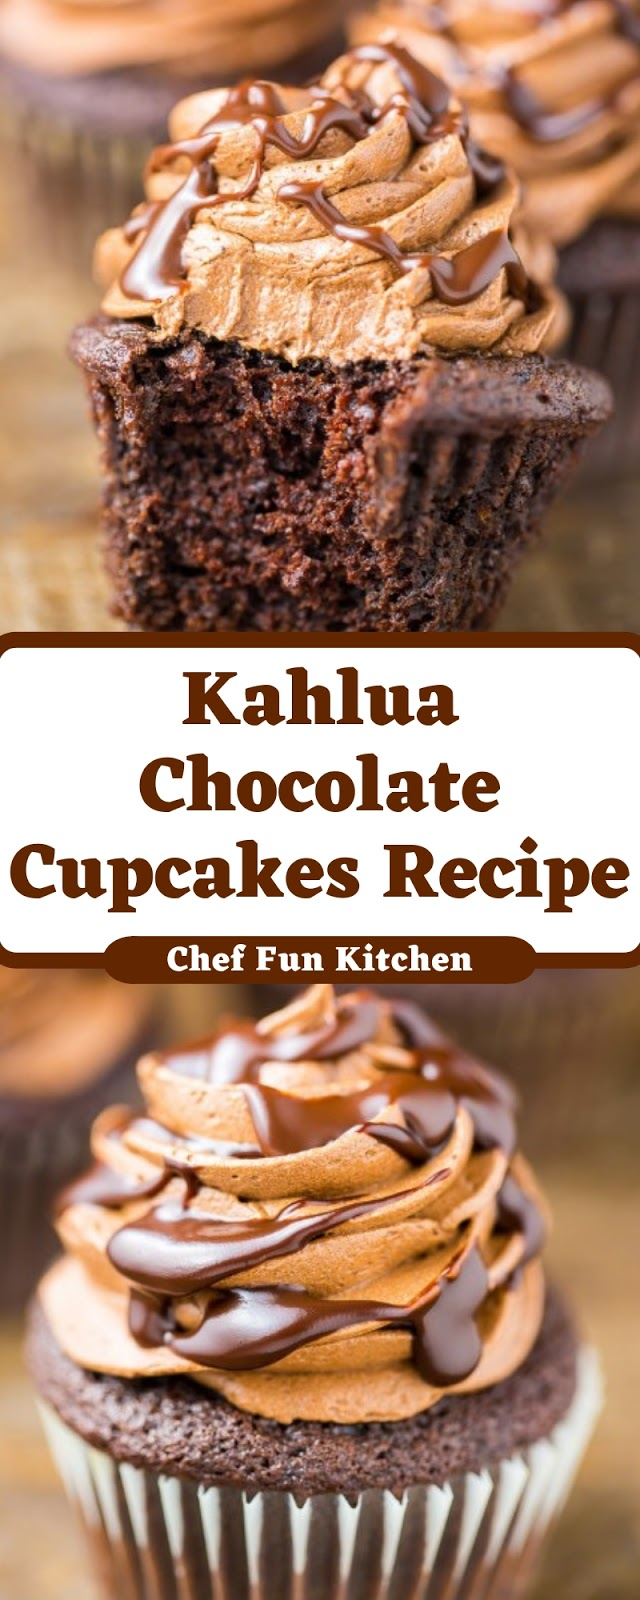 Kahlua Chocolate Cupcakes Recipe